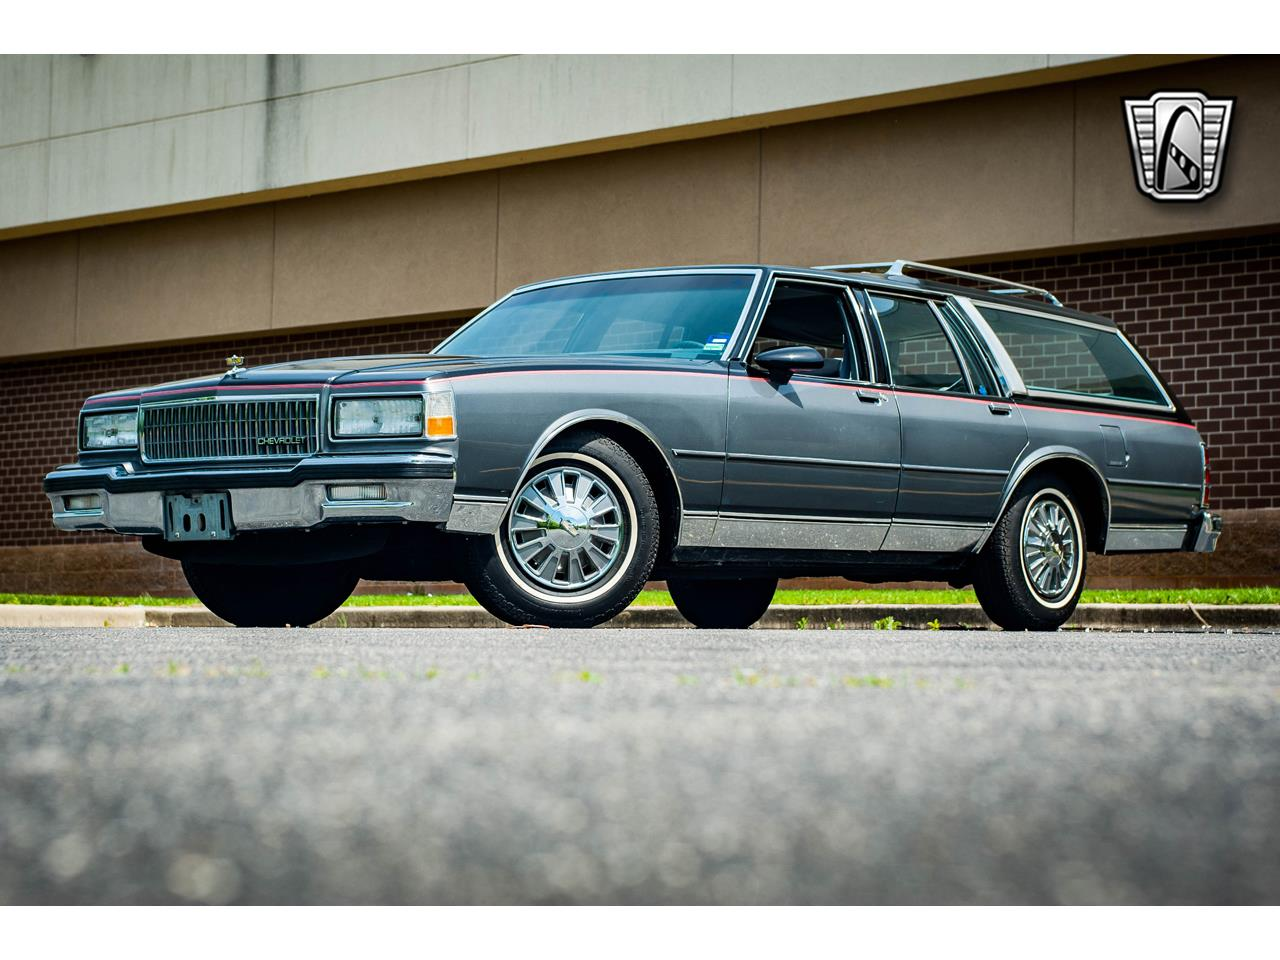 Large Picture of 1989 Caprice - $17,995.00 - QB9K